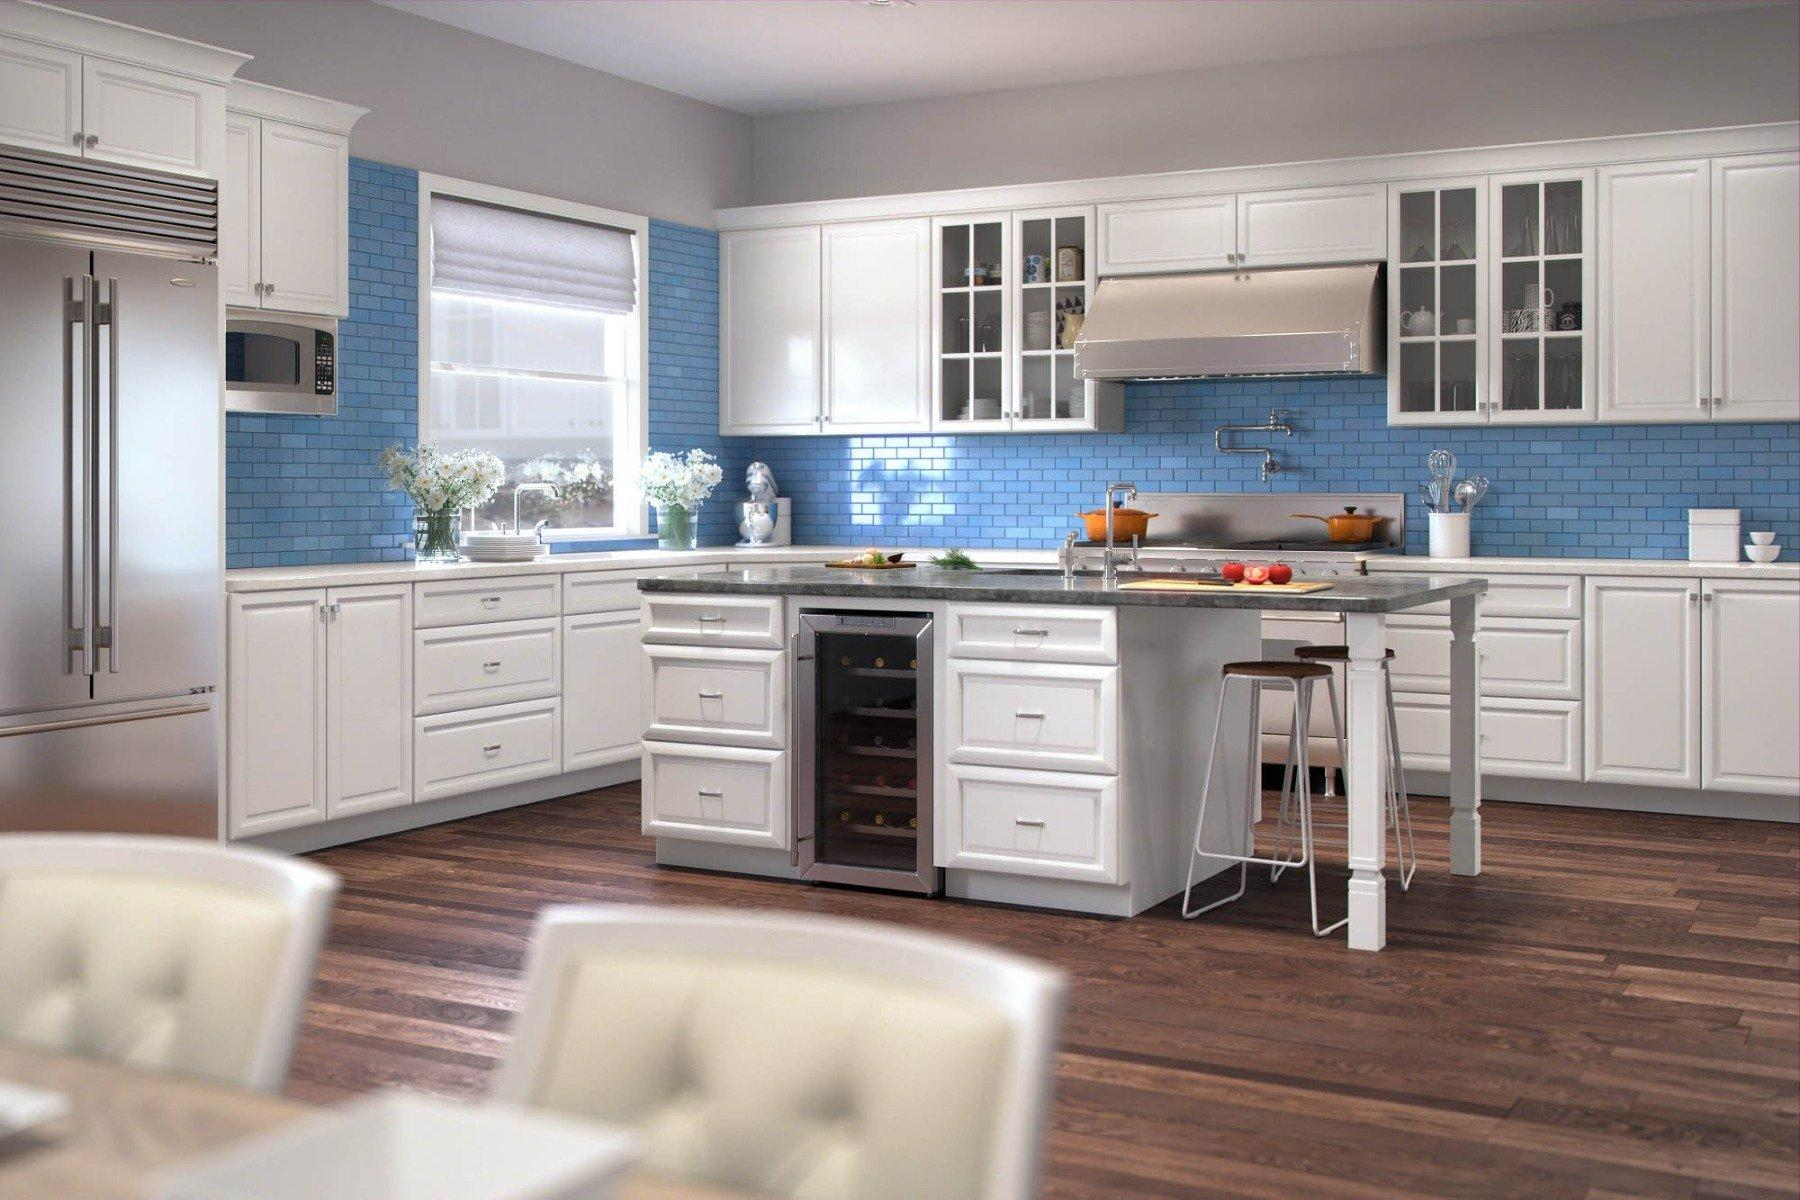 Photos Of White Kitchen Cabinets K White Kitchen Cabinets Album Gallery